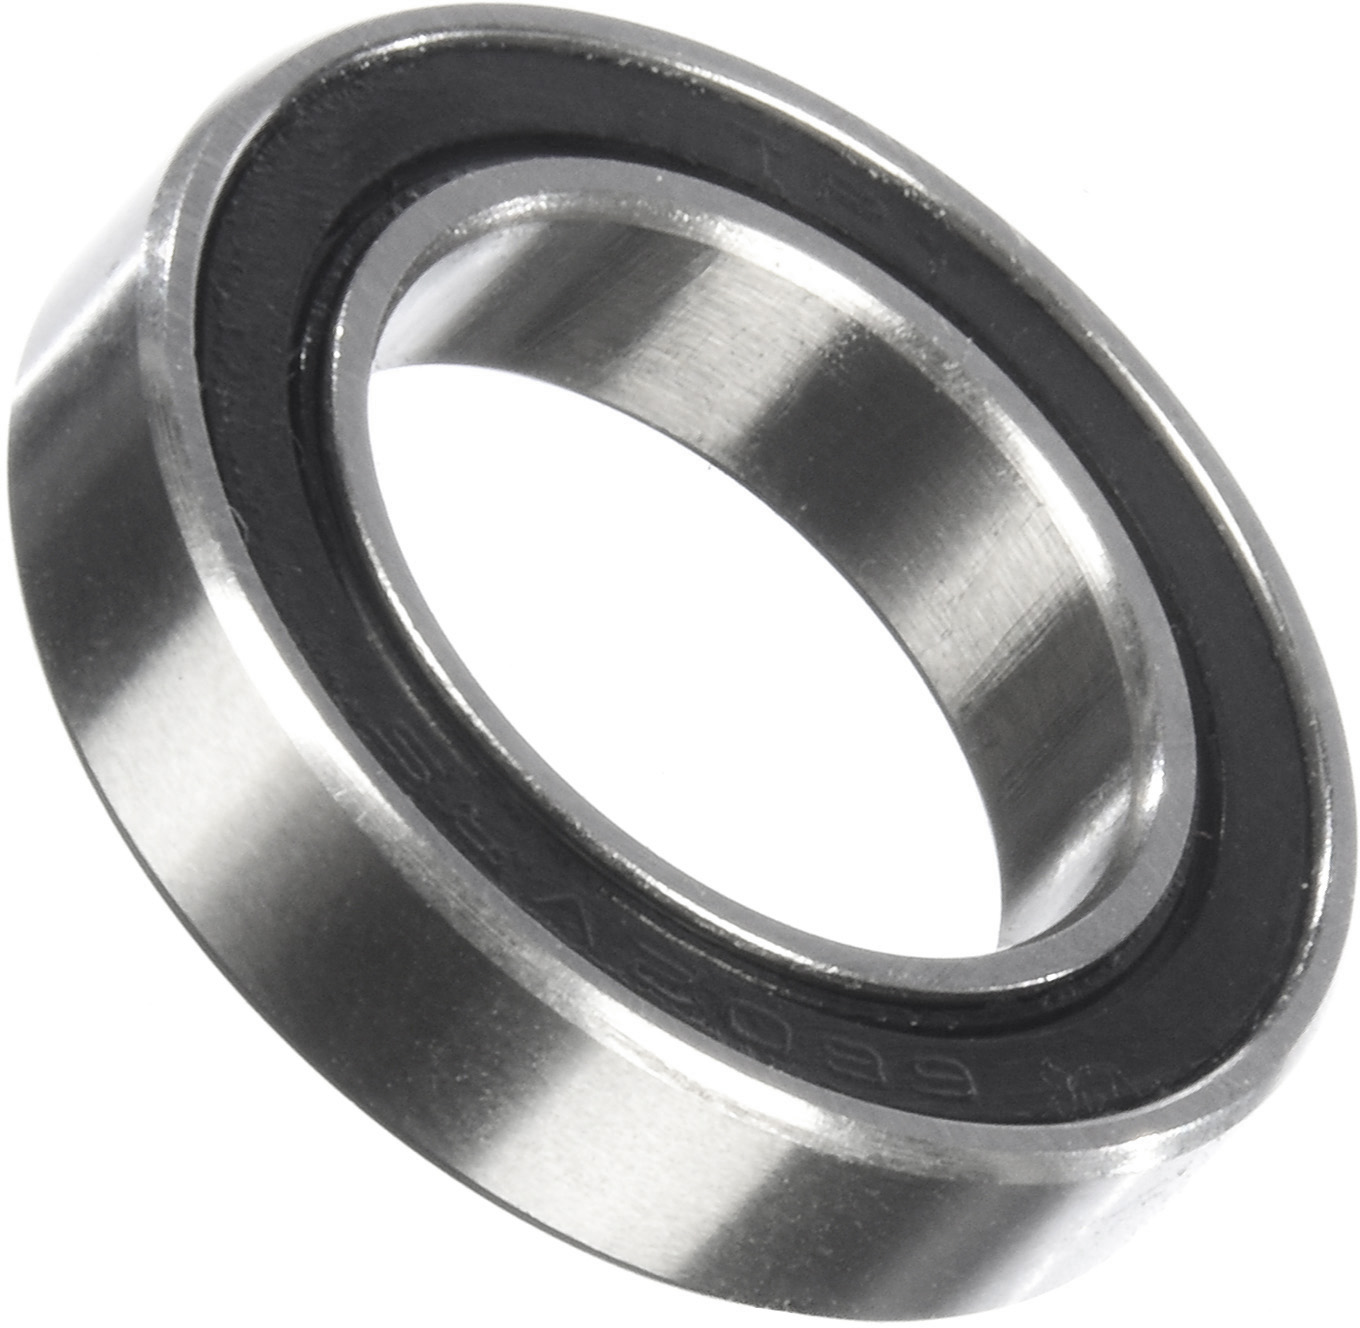 Brand-X Sealed Bearing 6903 2RS Silver